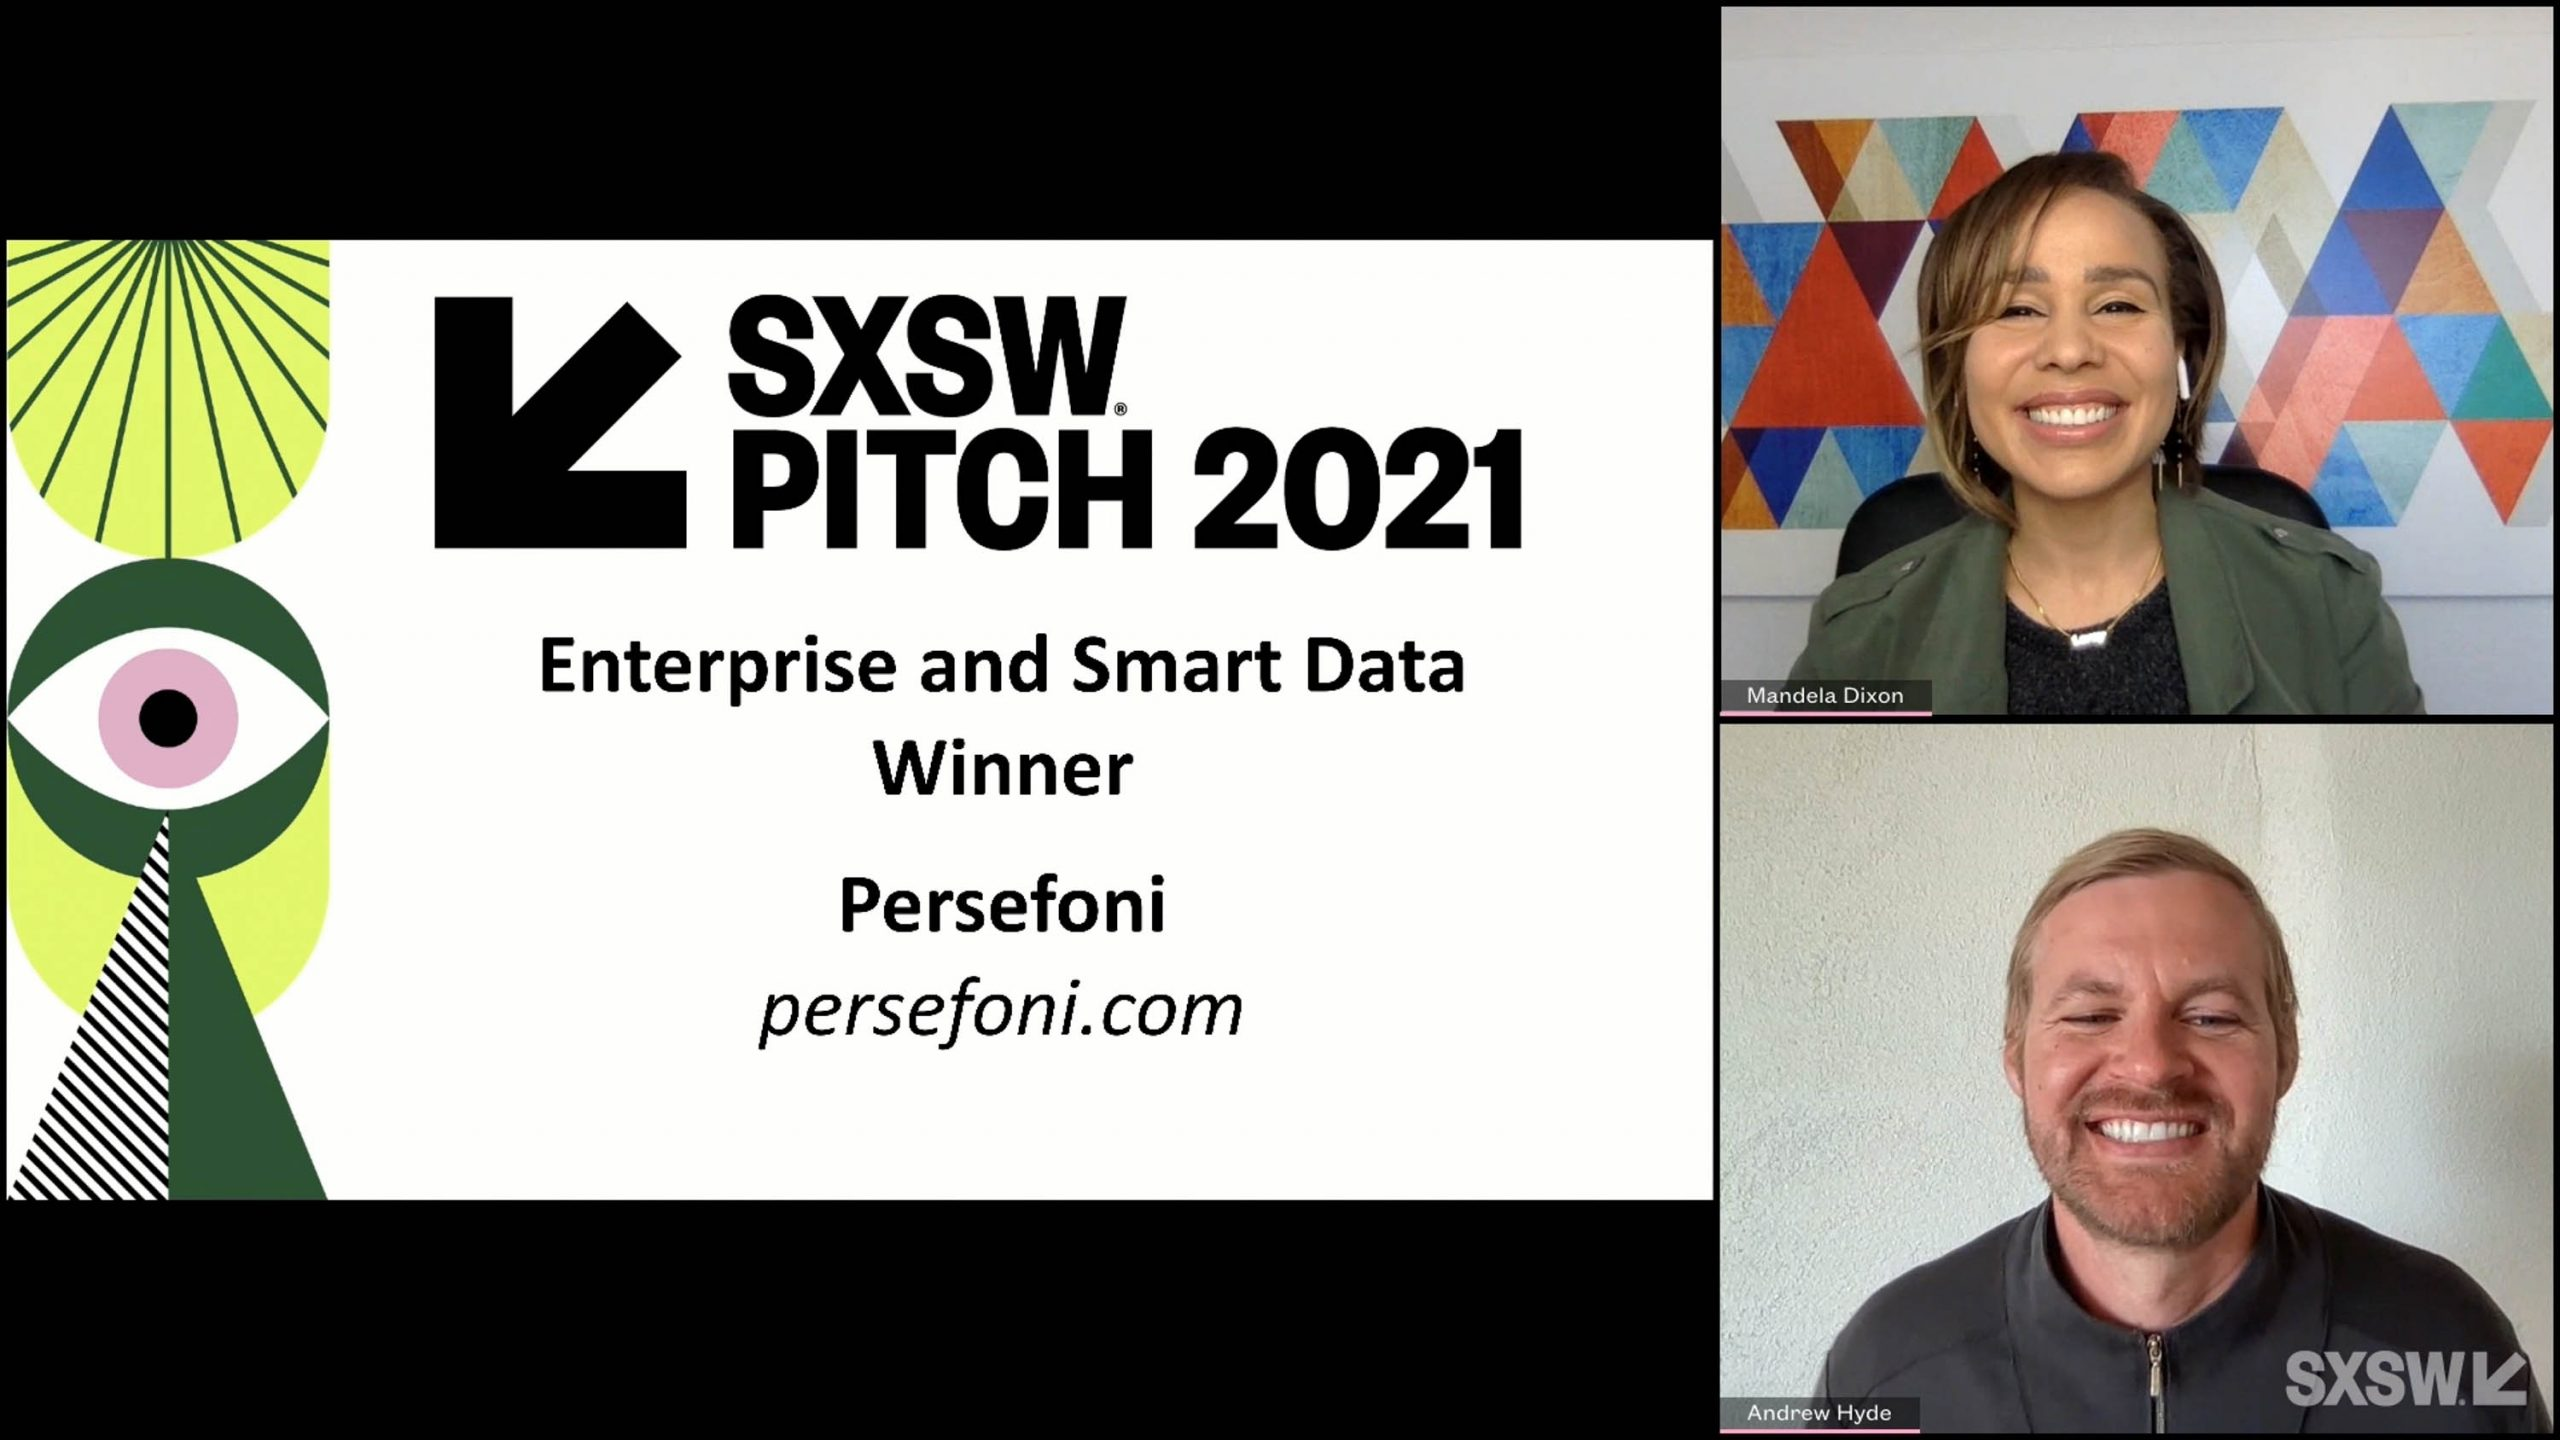 SXSW Pitch participant Persefoni wins the Enterprise and Smart Data category at the SXSW Pitch Awards during SXSW Online on March 20, 2021.